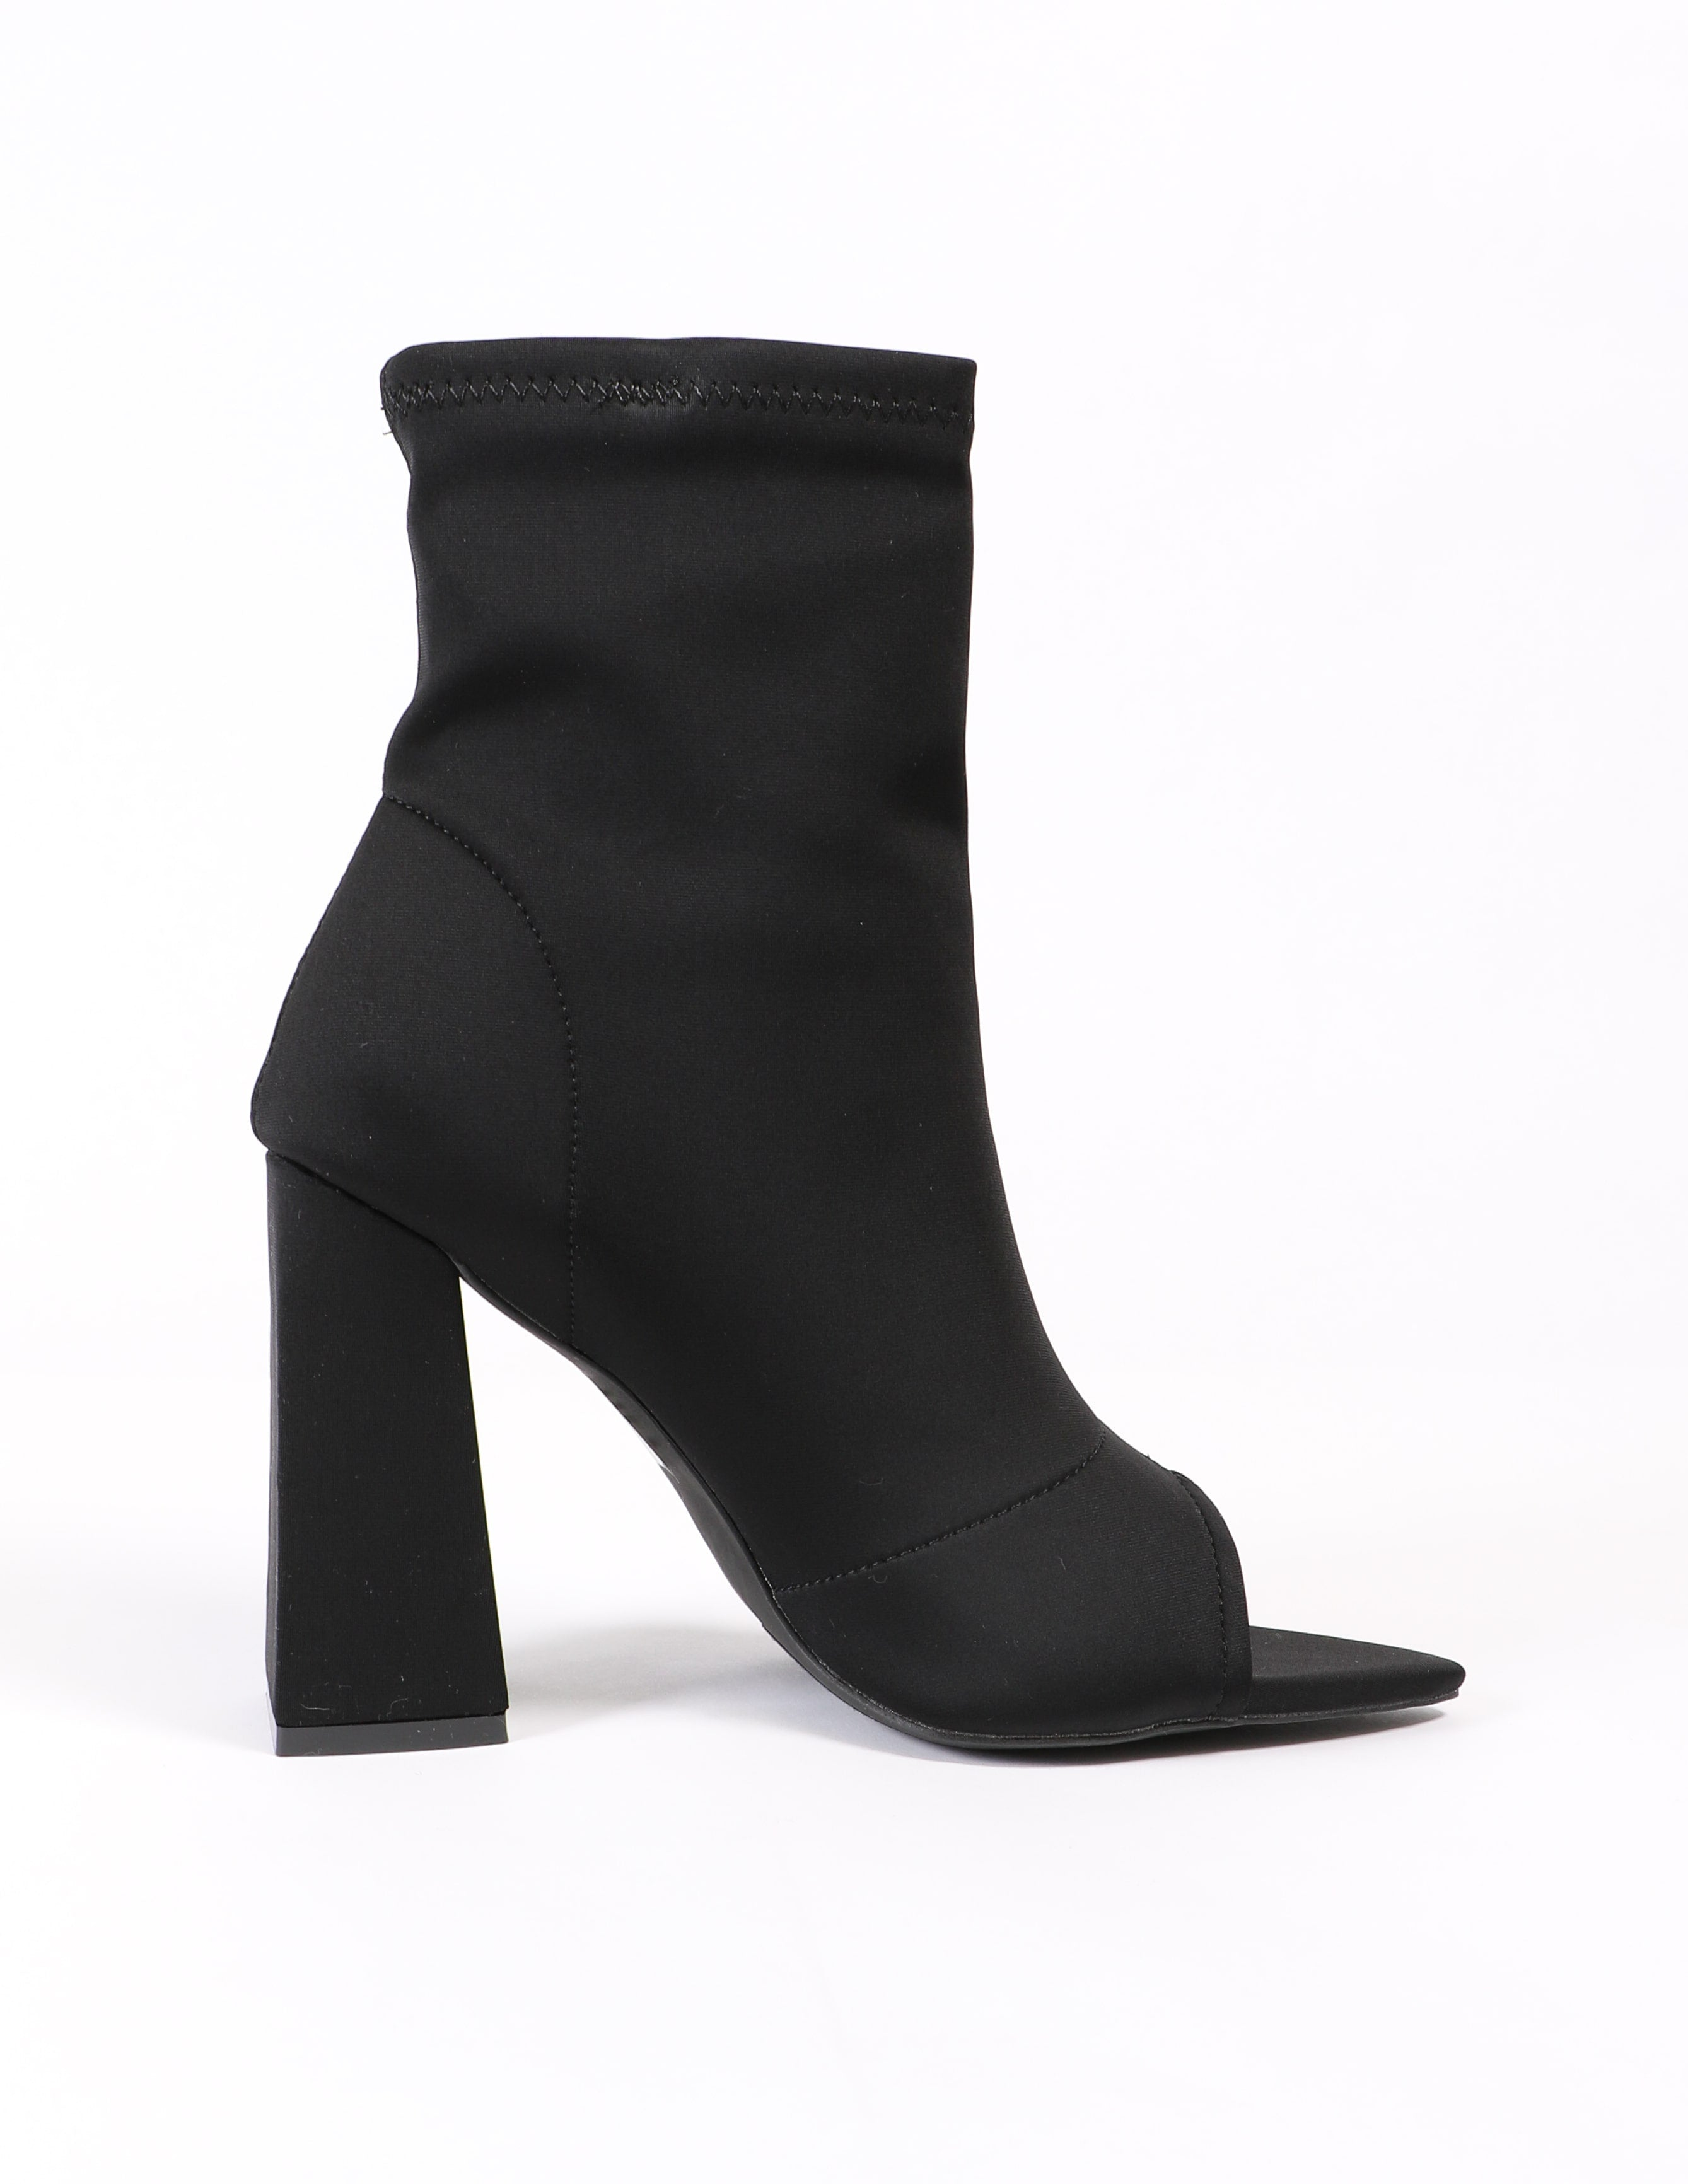 Black sit tight bootie on white background - elle bleu shoes